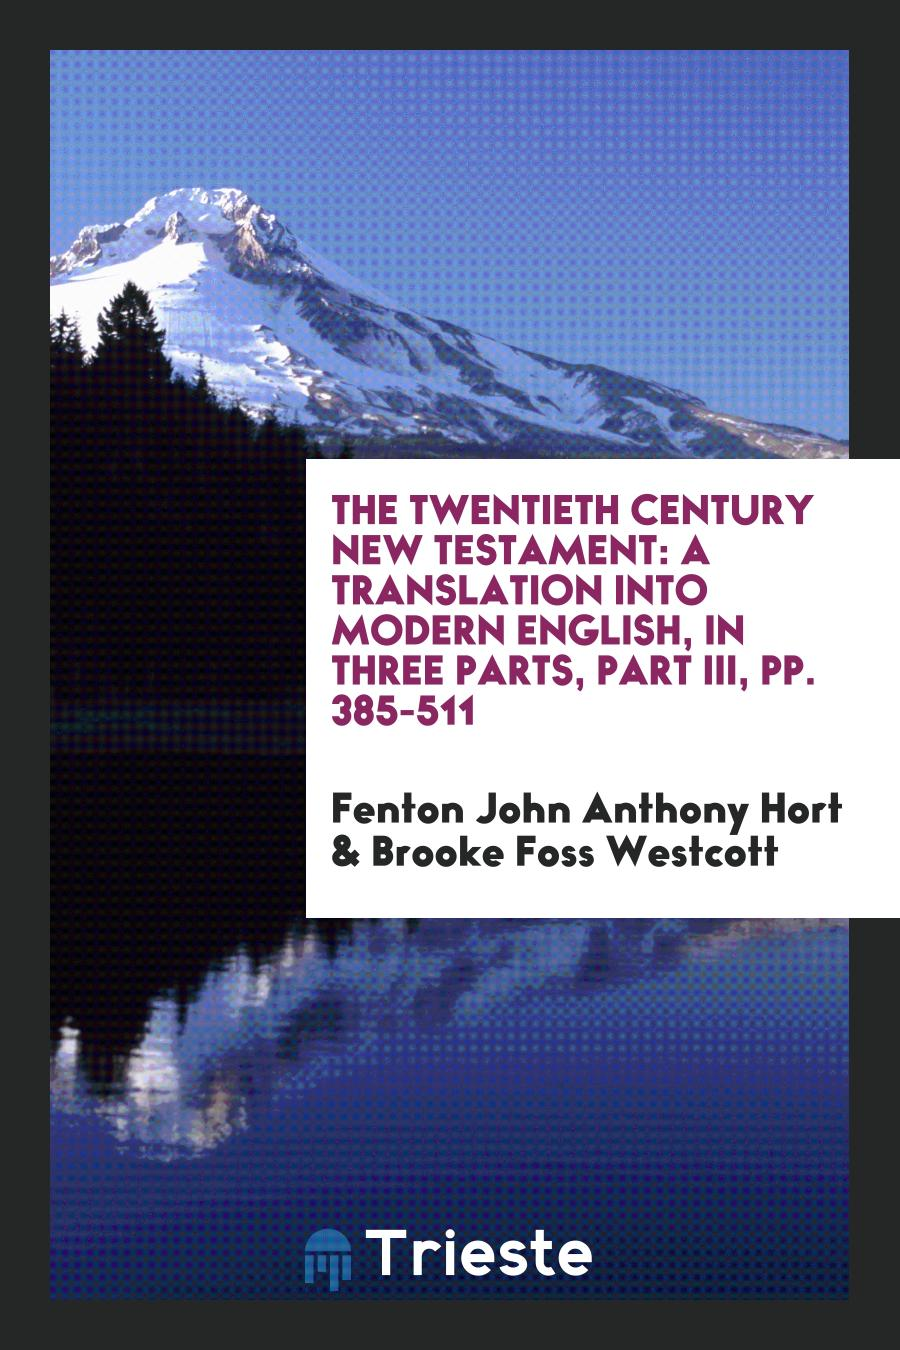 The Twentieth Century New Testament: A Translation Into Modern English, in Three Parts, Part III, pp. 385-511